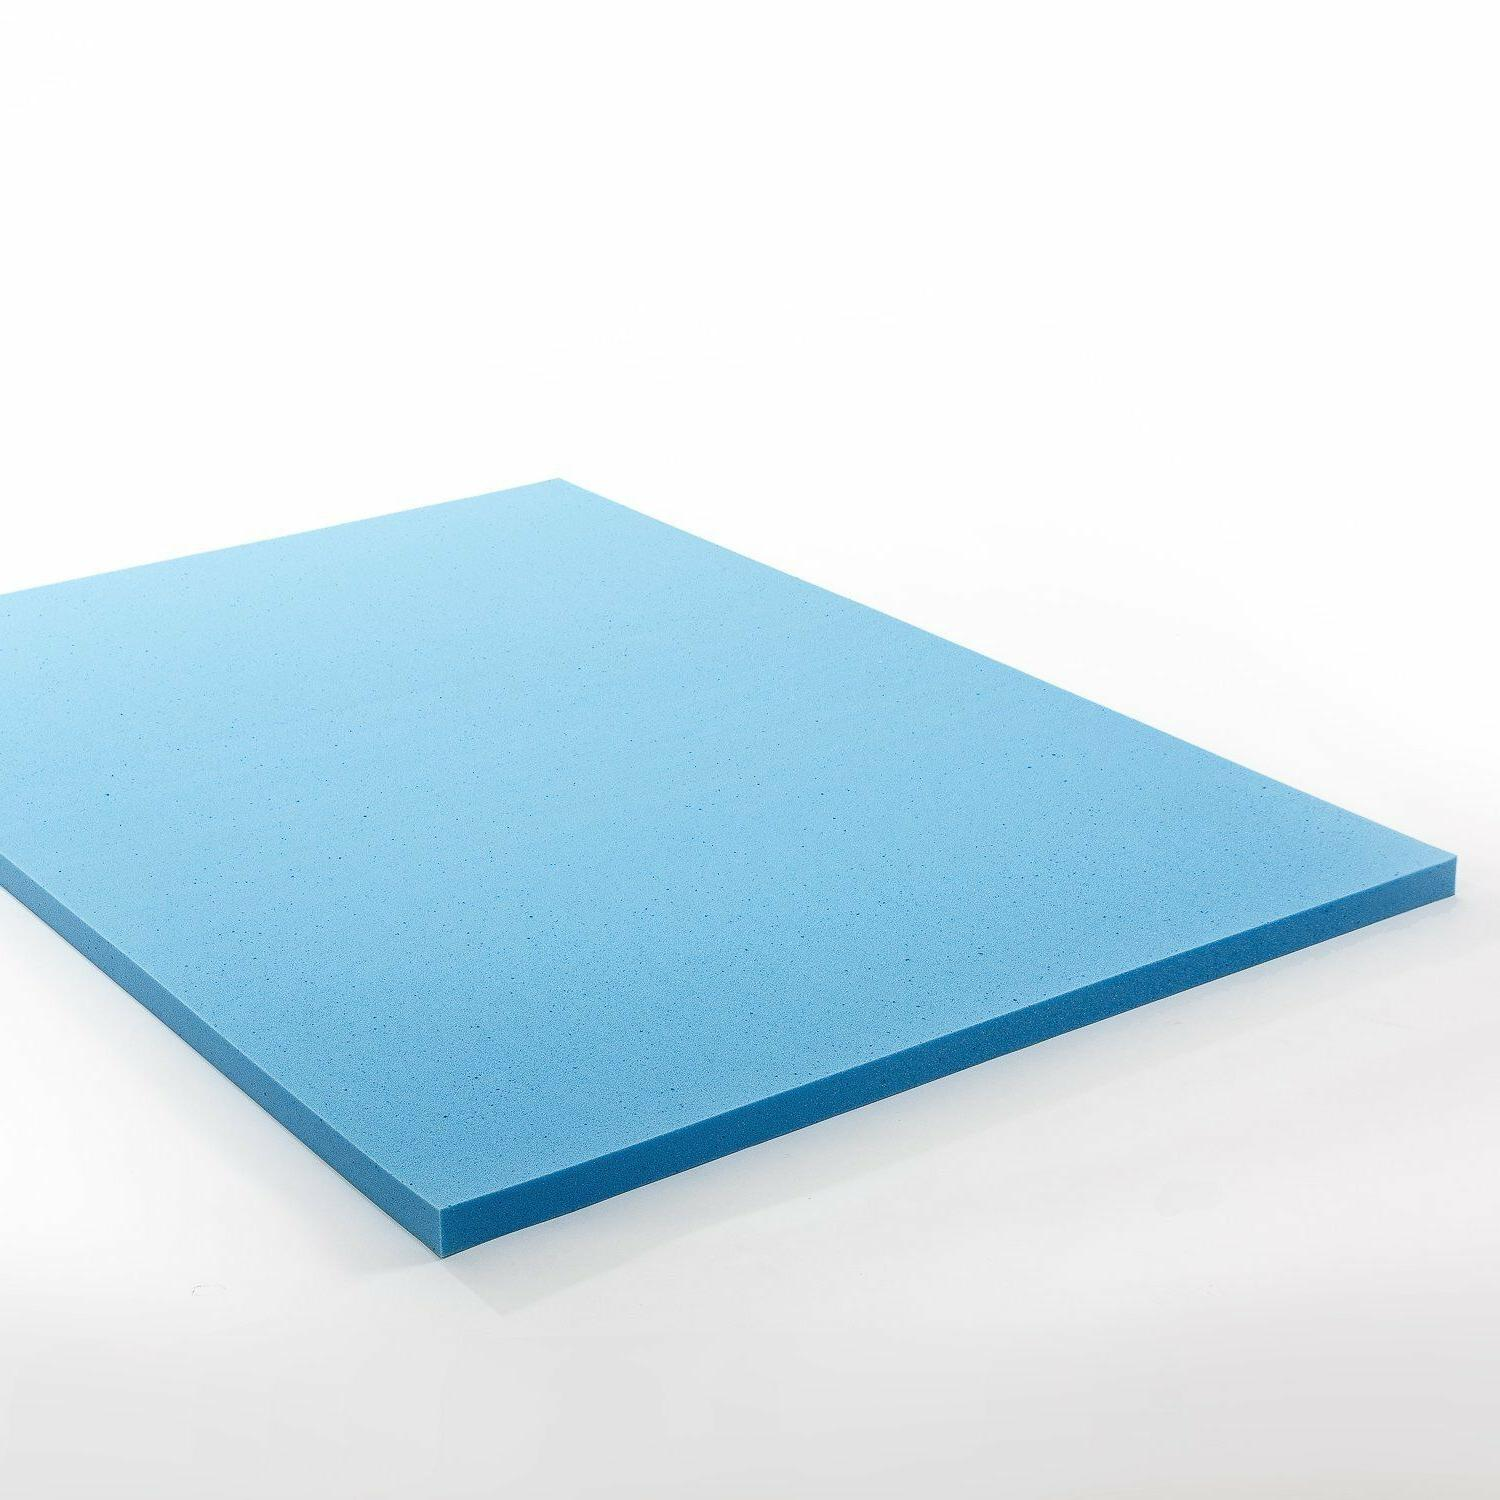 Mattress Topper Comfortable Pad All Sizes inch